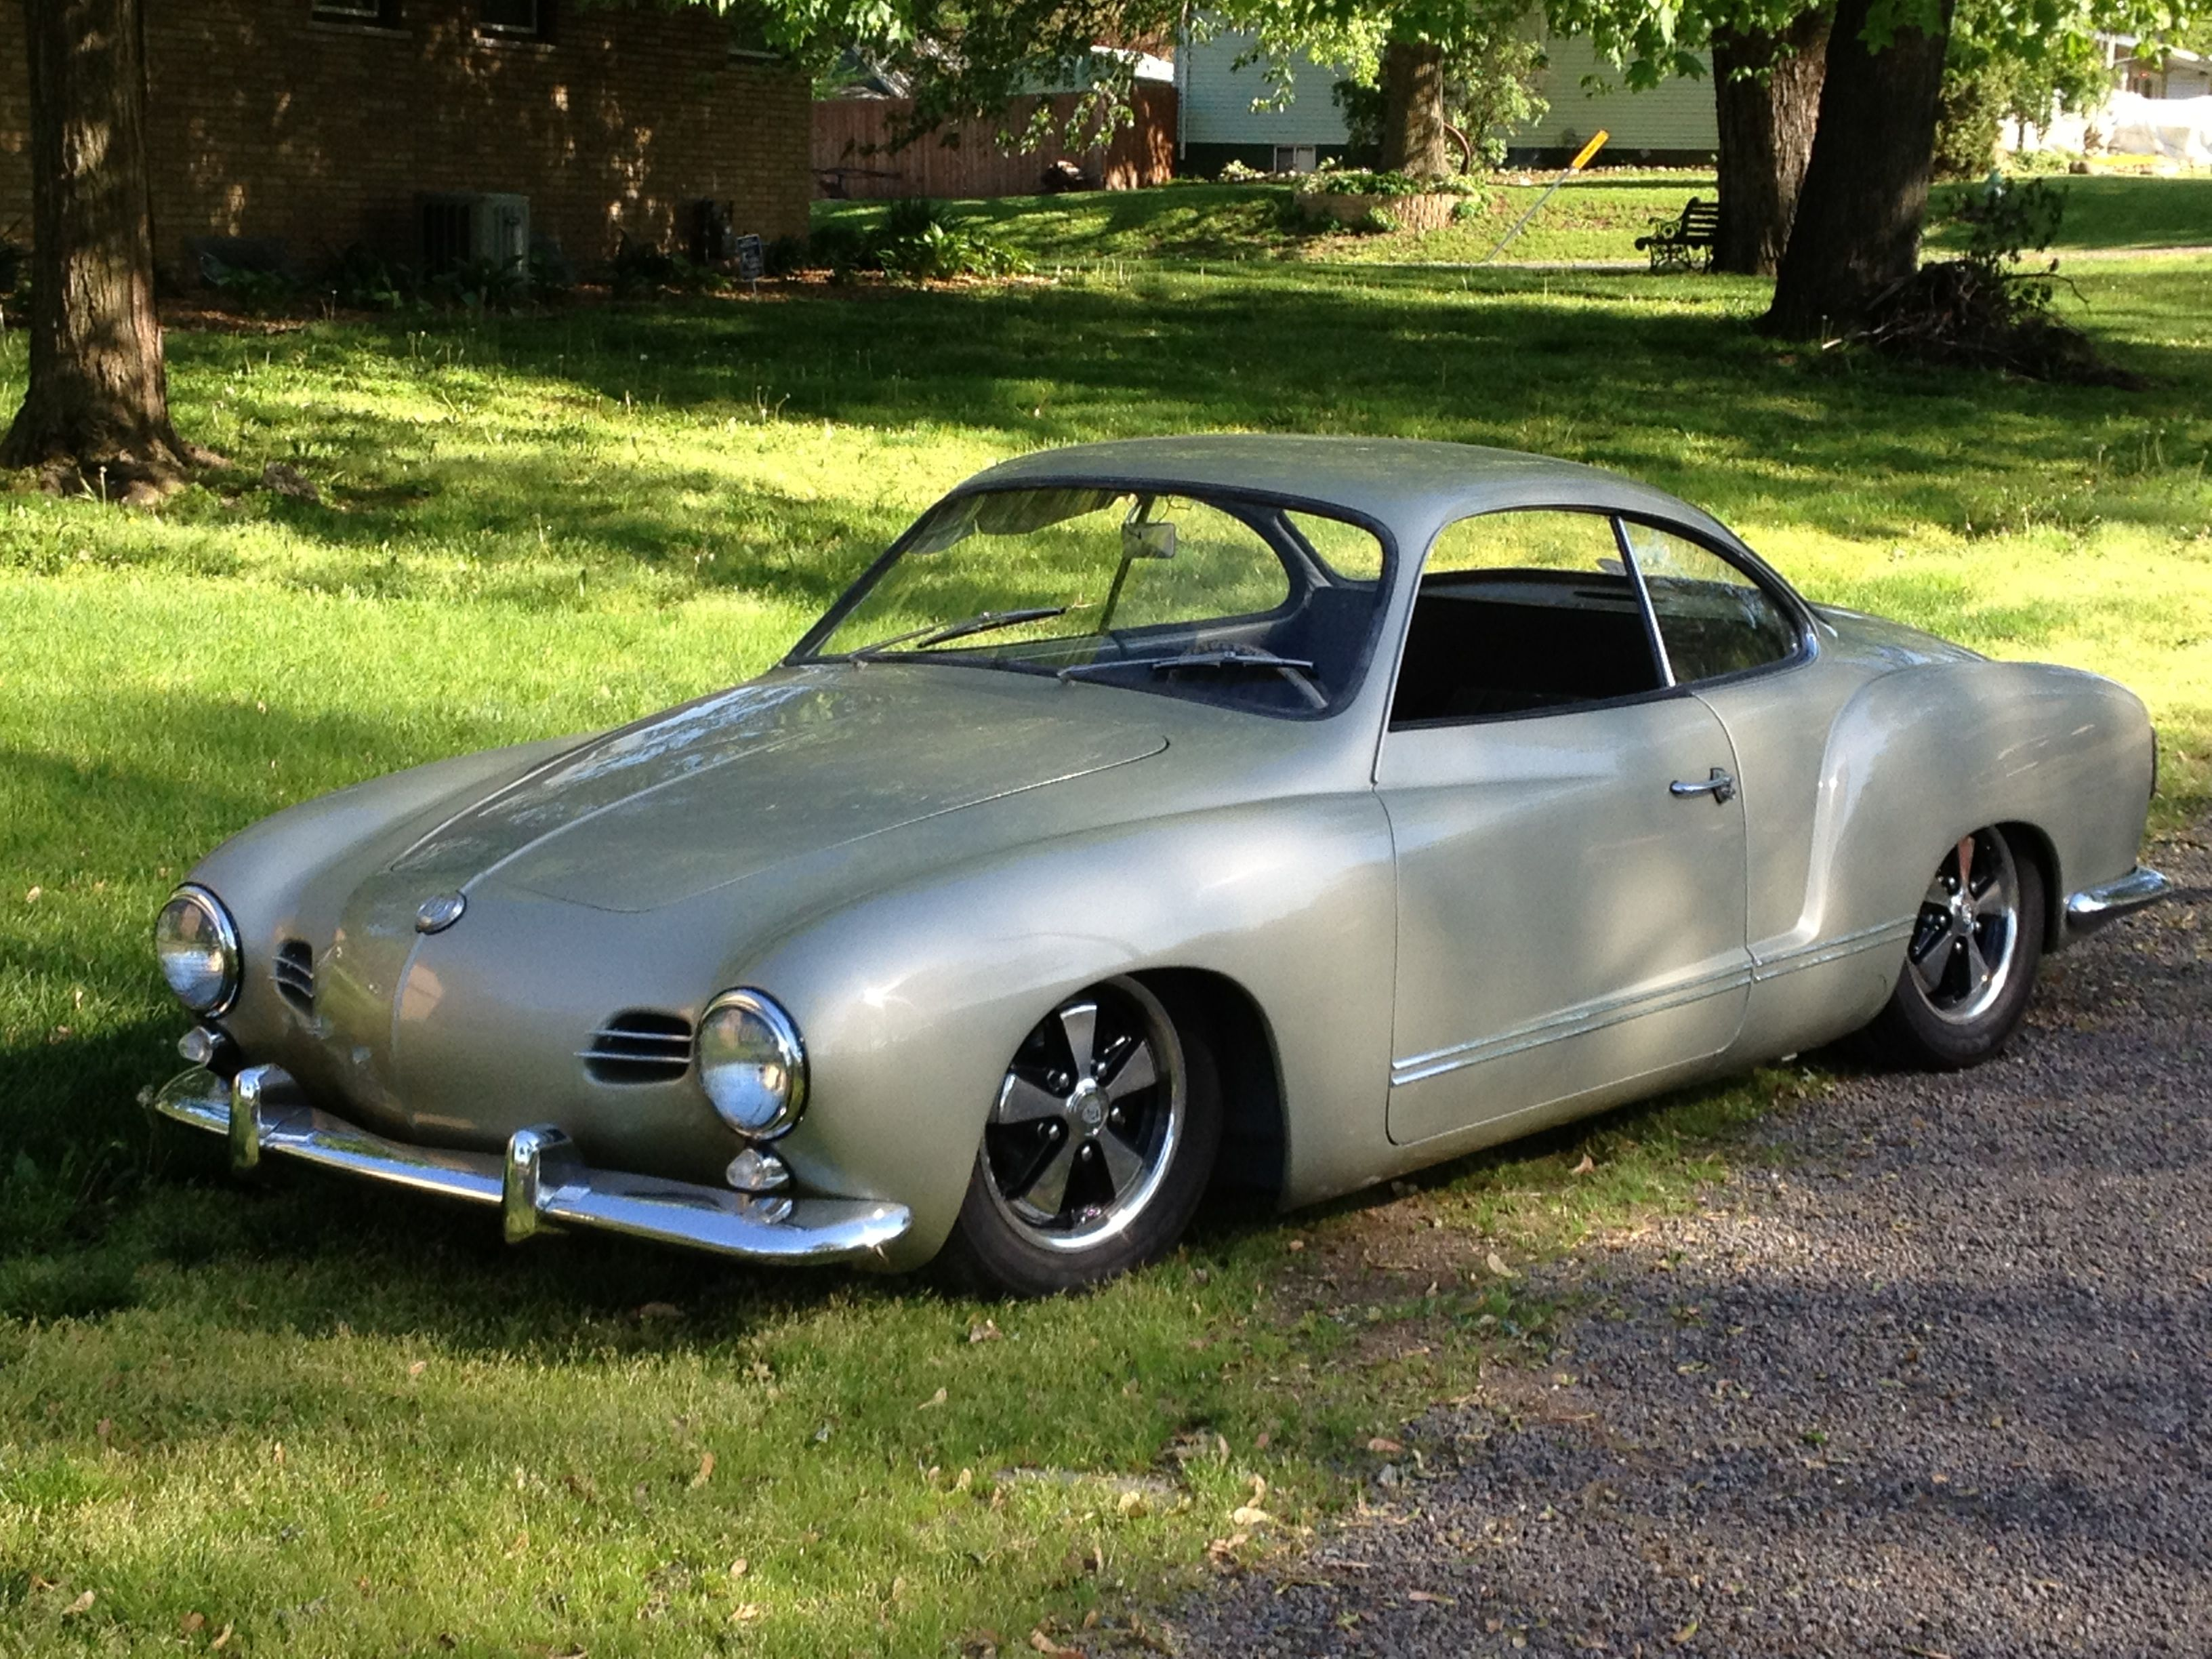 1958 vw karmann ghia low light my stuff pinterest volkswagen karmann ghia cars and volkswagen. Black Bedroom Furniture Sets. Home Design Ideas